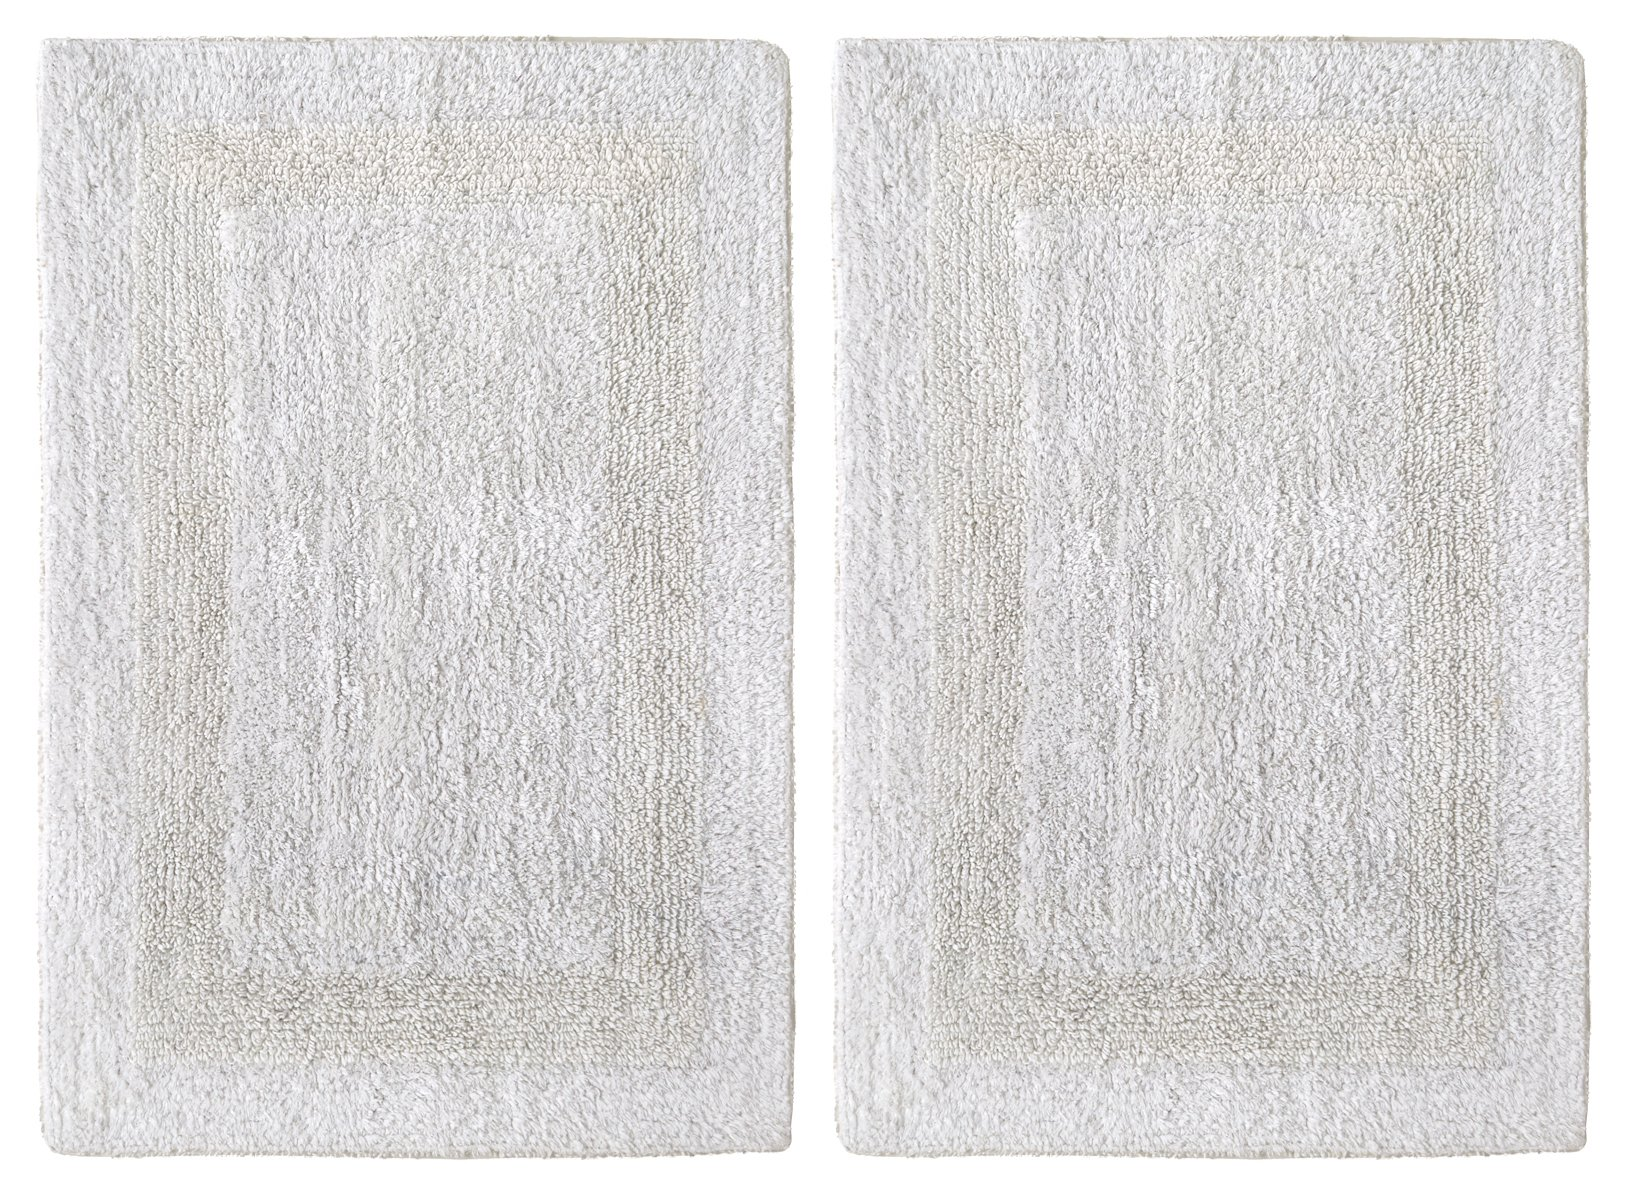 Cotton Craft 2 Piece Reversible Step Out Bath Mat Rug Set 17x24 White, 100% Pure Cotton, Super Soft, Plush & Absorbent, Hand Tufted Heavy Weight Construction, Full Reversible, Rug Pad Recommended by Cotton Craft